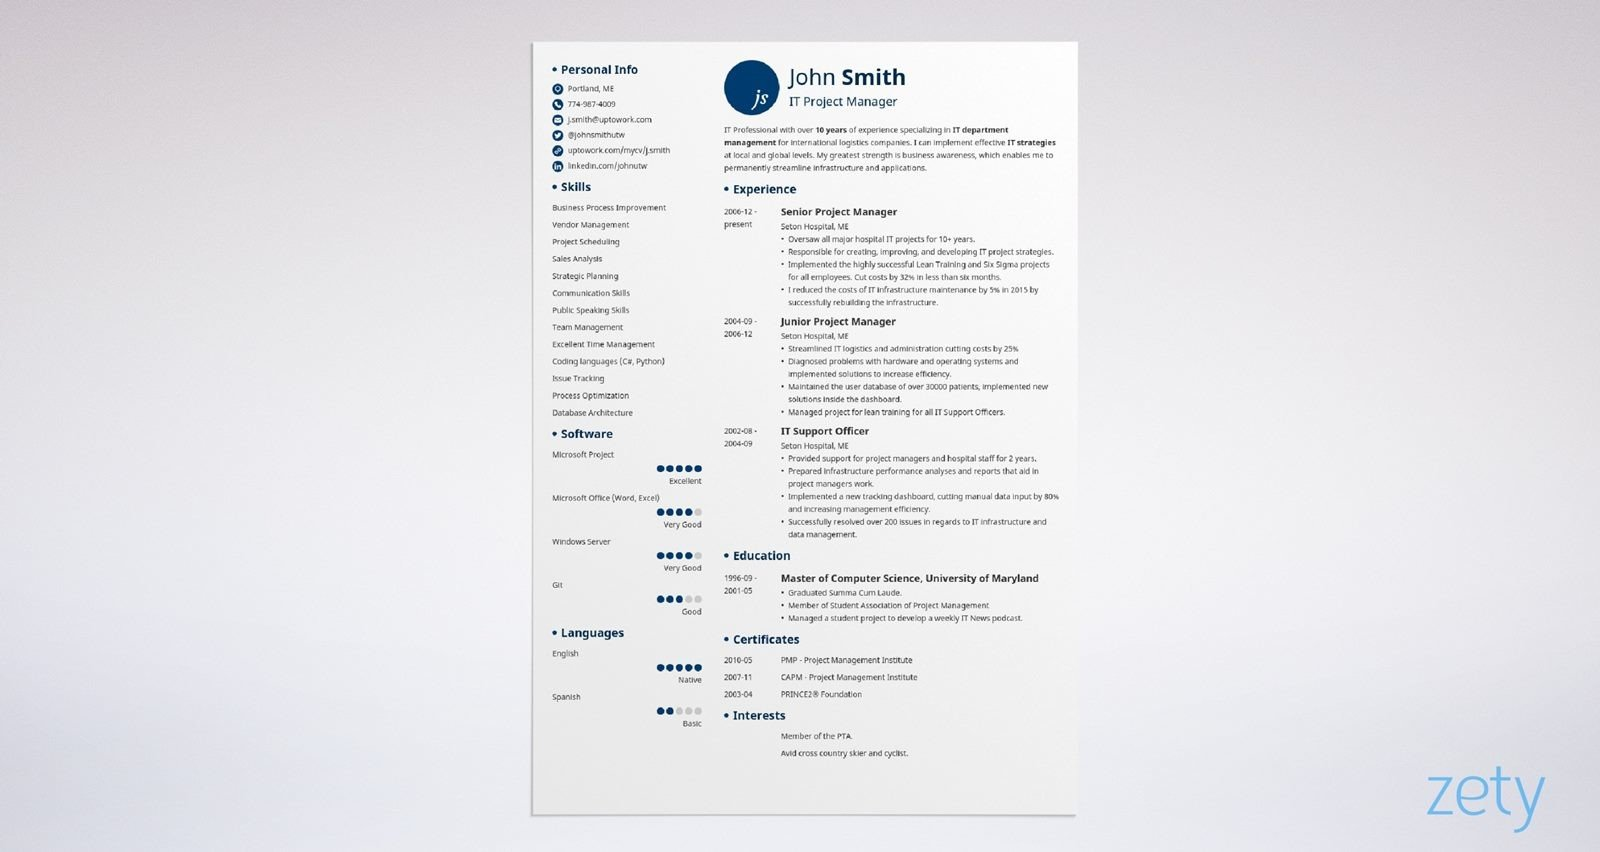 Blank Resume Templates: 15+ Best Blank Resume Forms to Fill ...